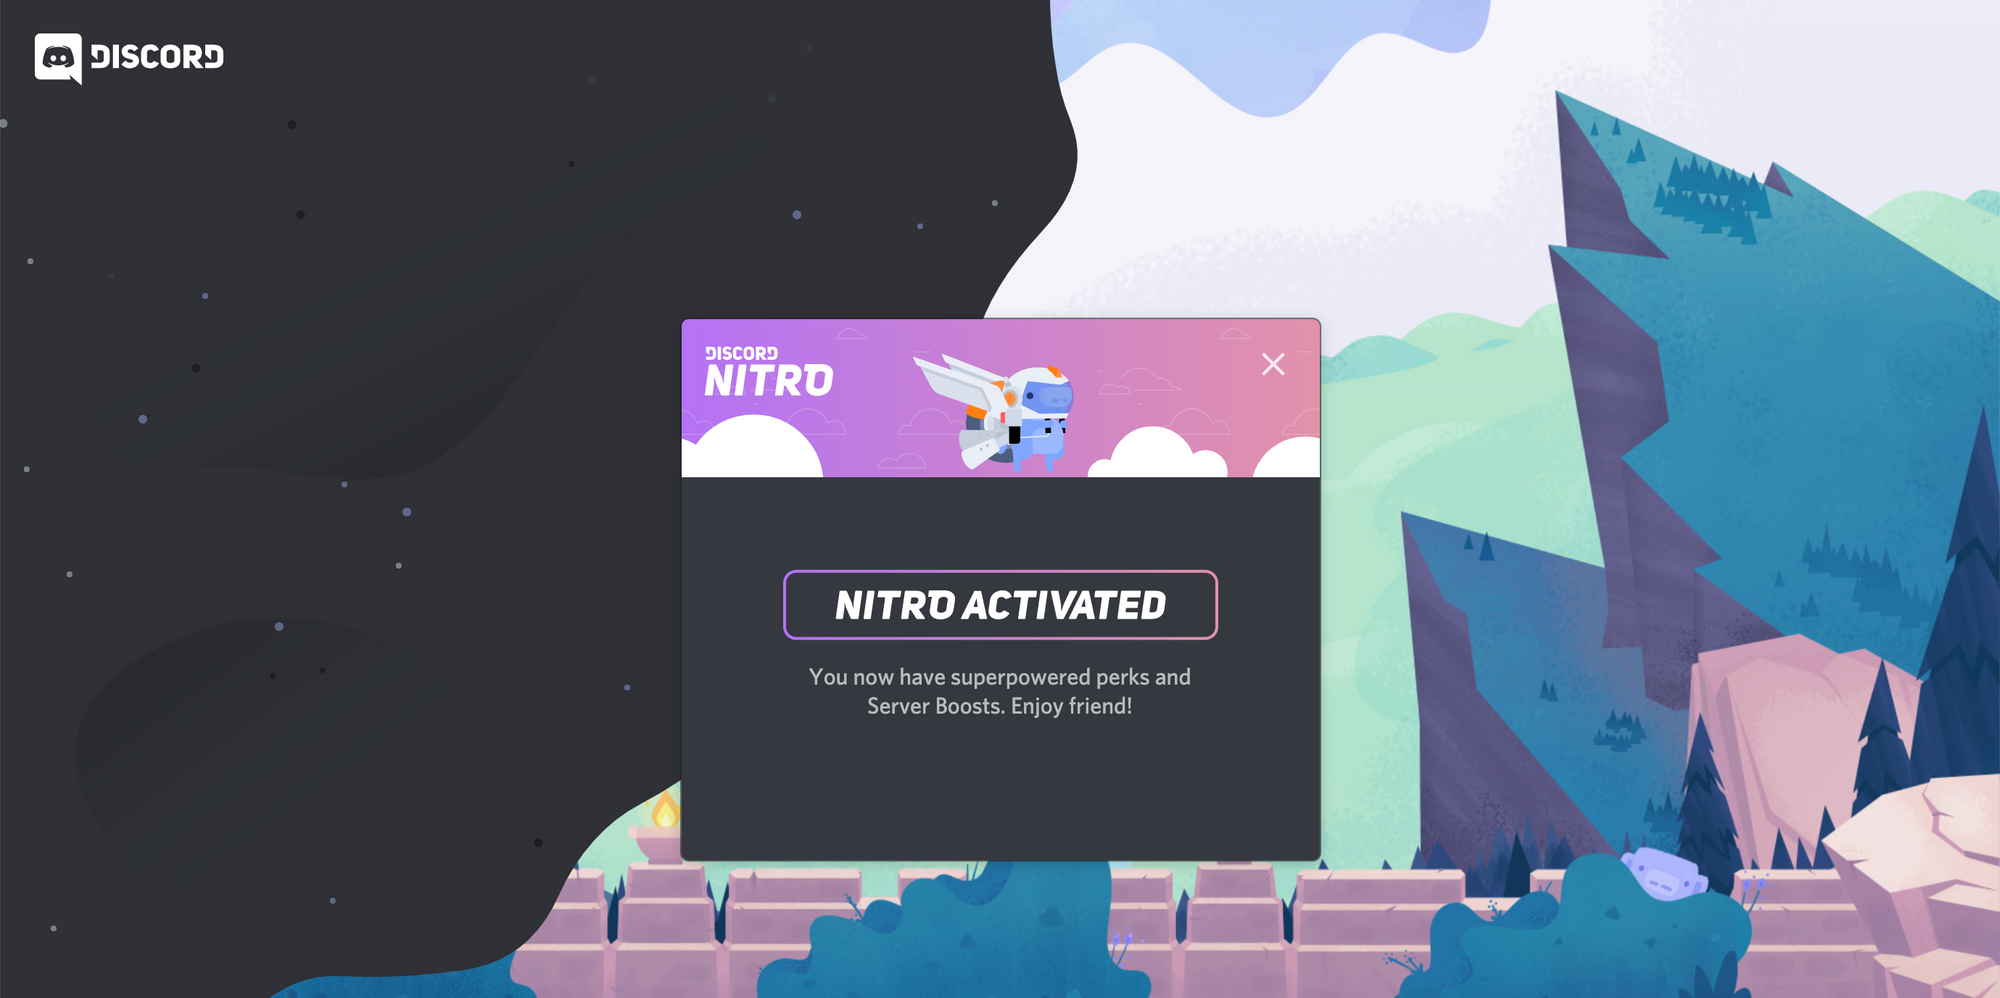 A screenshot of the page displayed when Discord Nitro is activated.